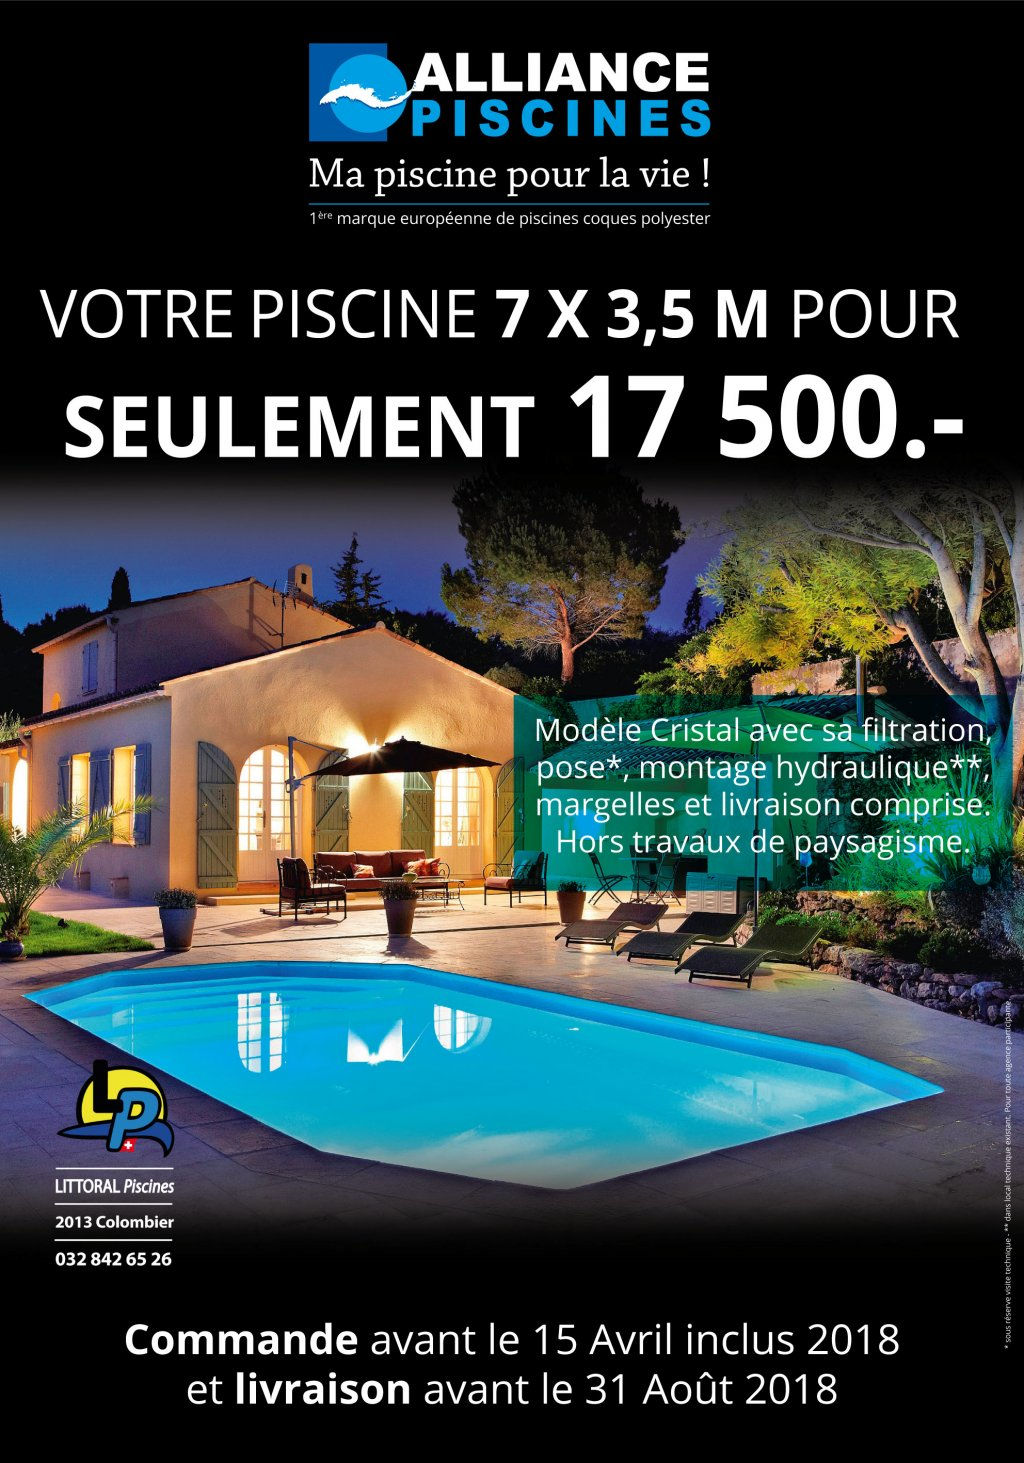 alliance piscine modele cool alliance piscine nos avis alliance piscine marignane with alliance. Black Bedroom Furniture Sets. Home Design Ideas